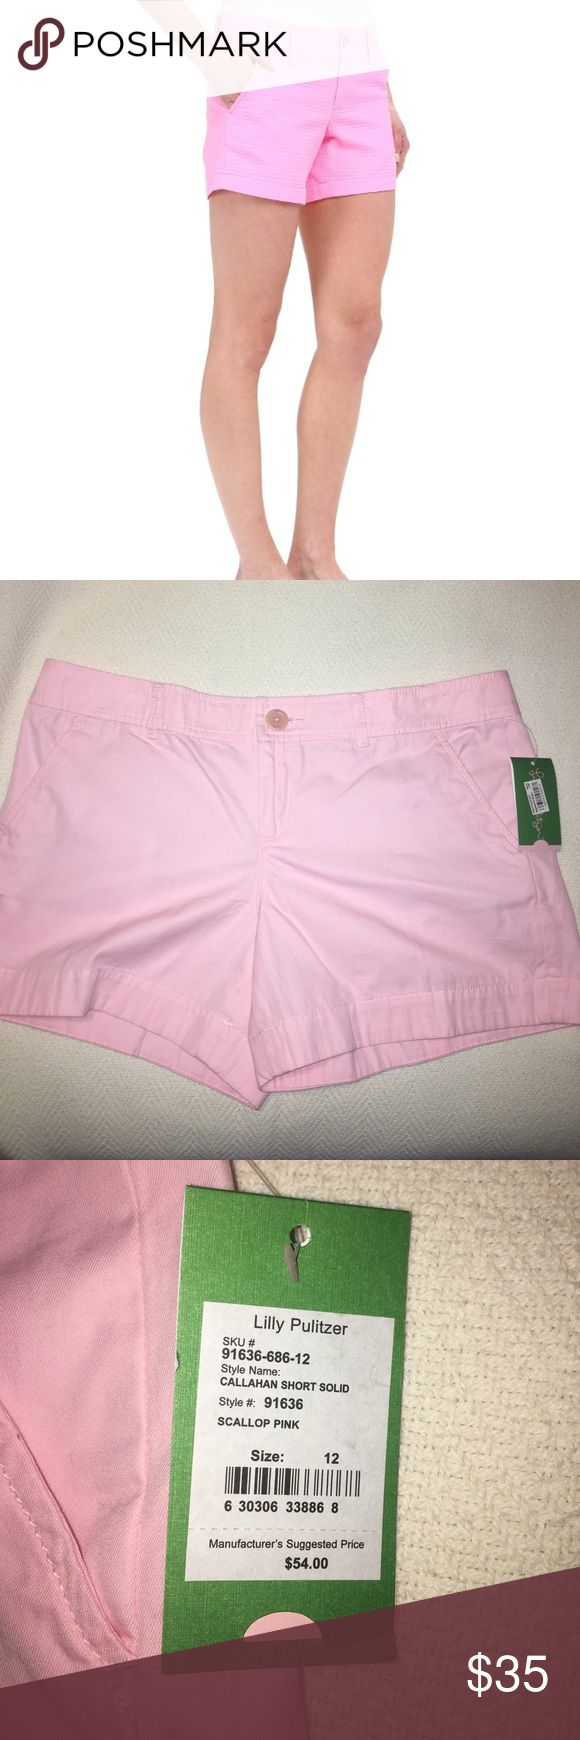 "Lilly Pulitzer Callahan shorts New with tags! Lilly Pulitzer Callahan shorts. The color is called ""scallop pink"" and appears a bit lighter than the stock photo. Very cute! Women's size 12 **price is firm** Lilly Pulitzer Shorts"